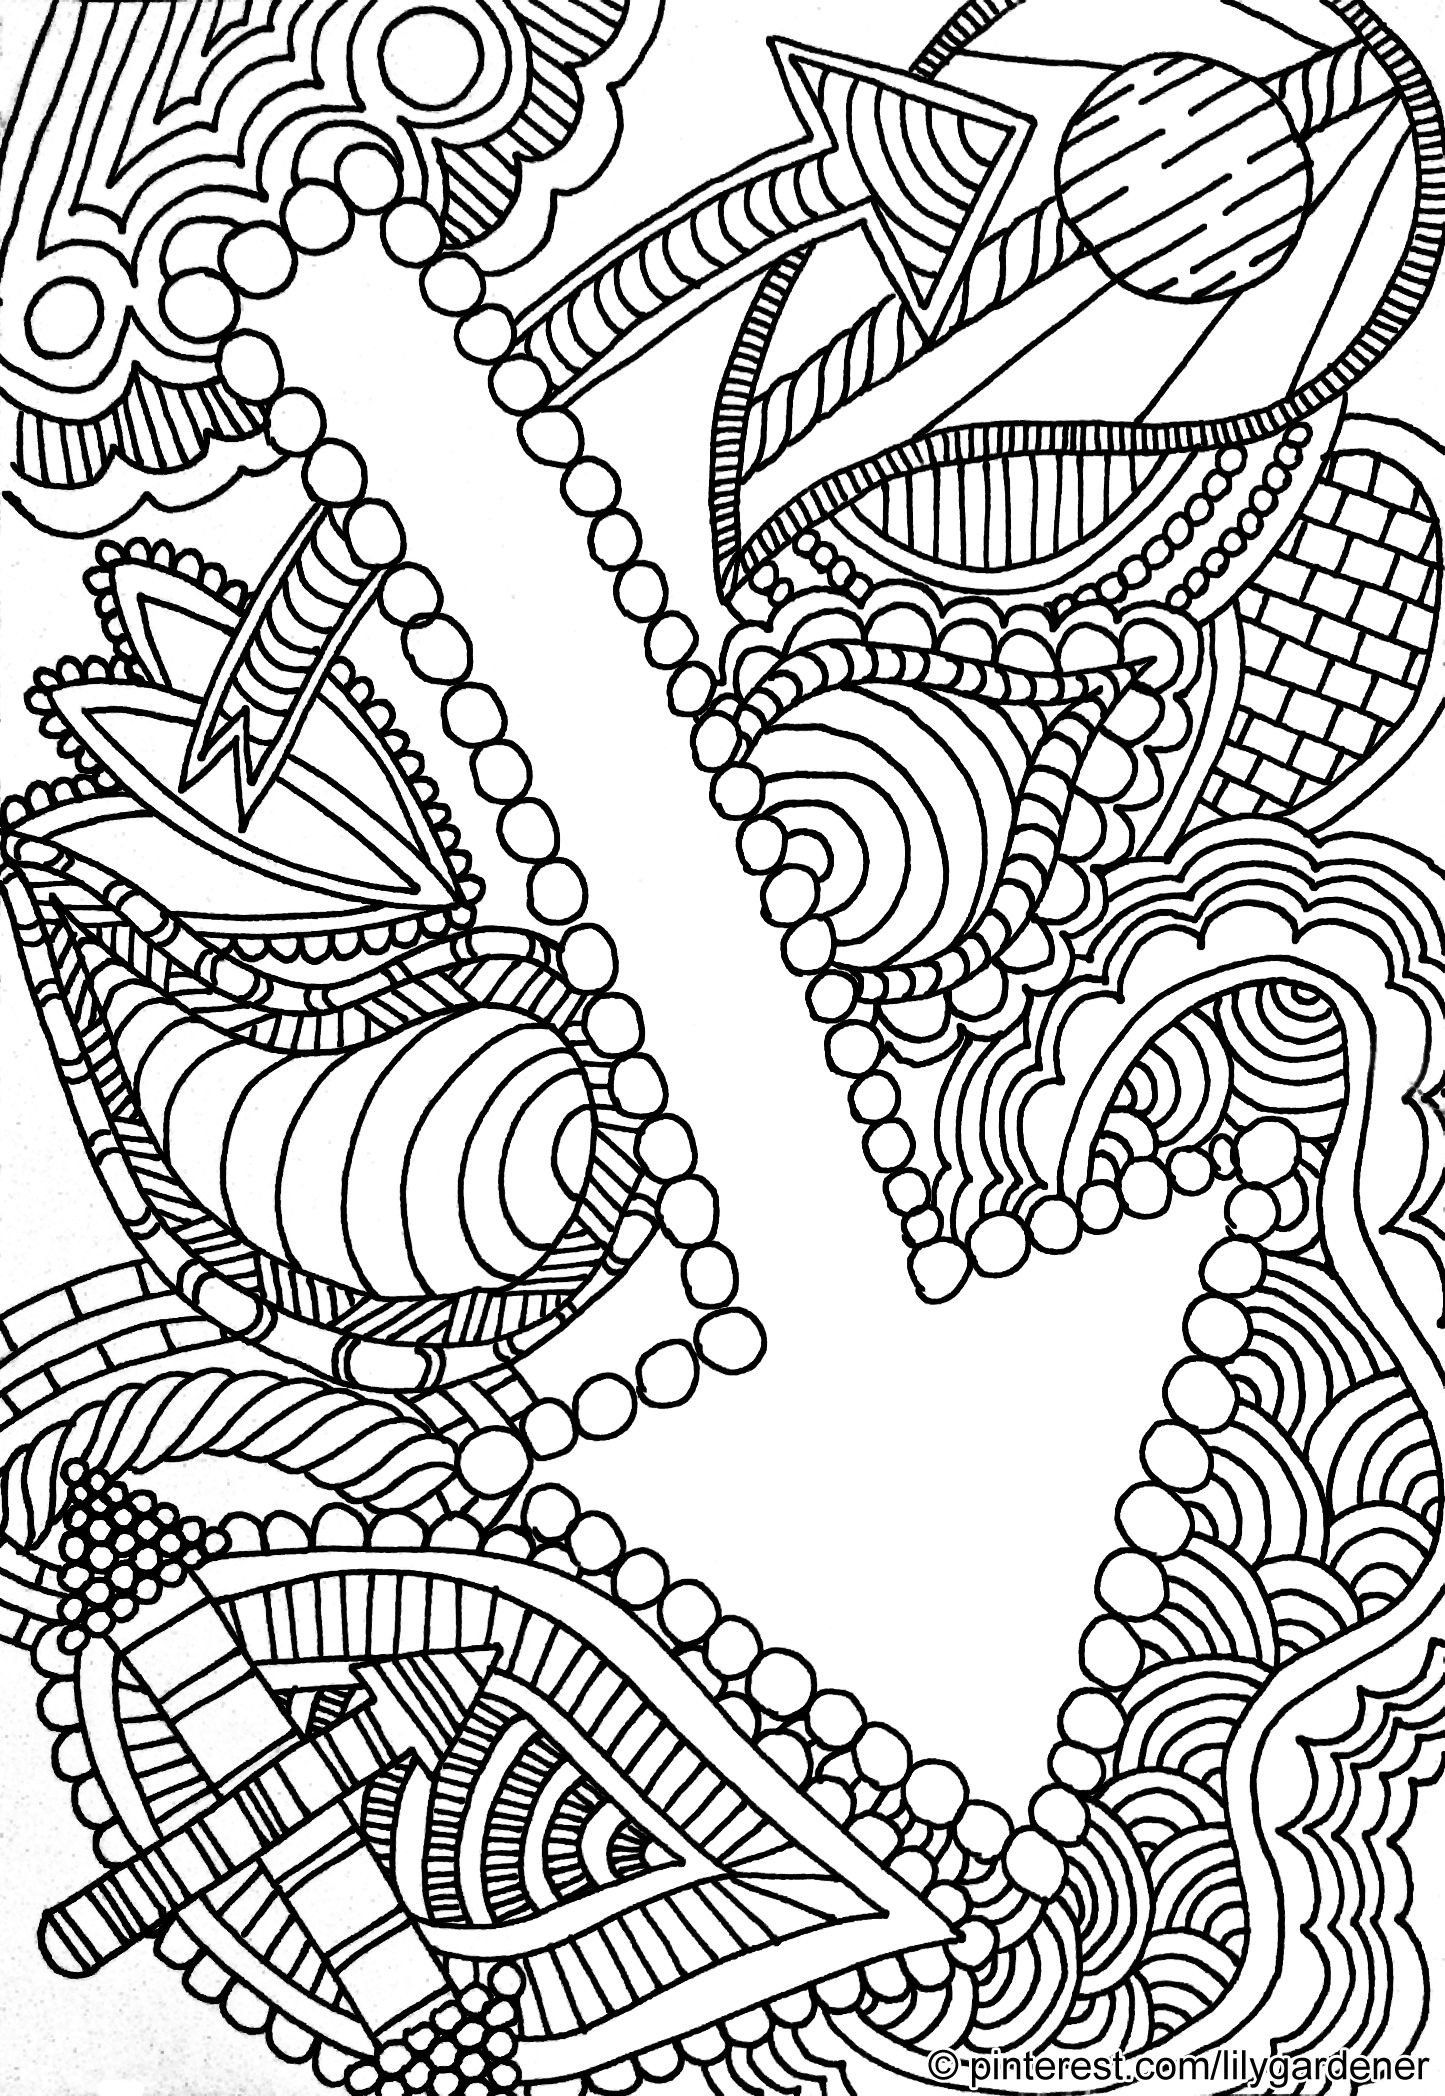 Coloring Online For Adults Free